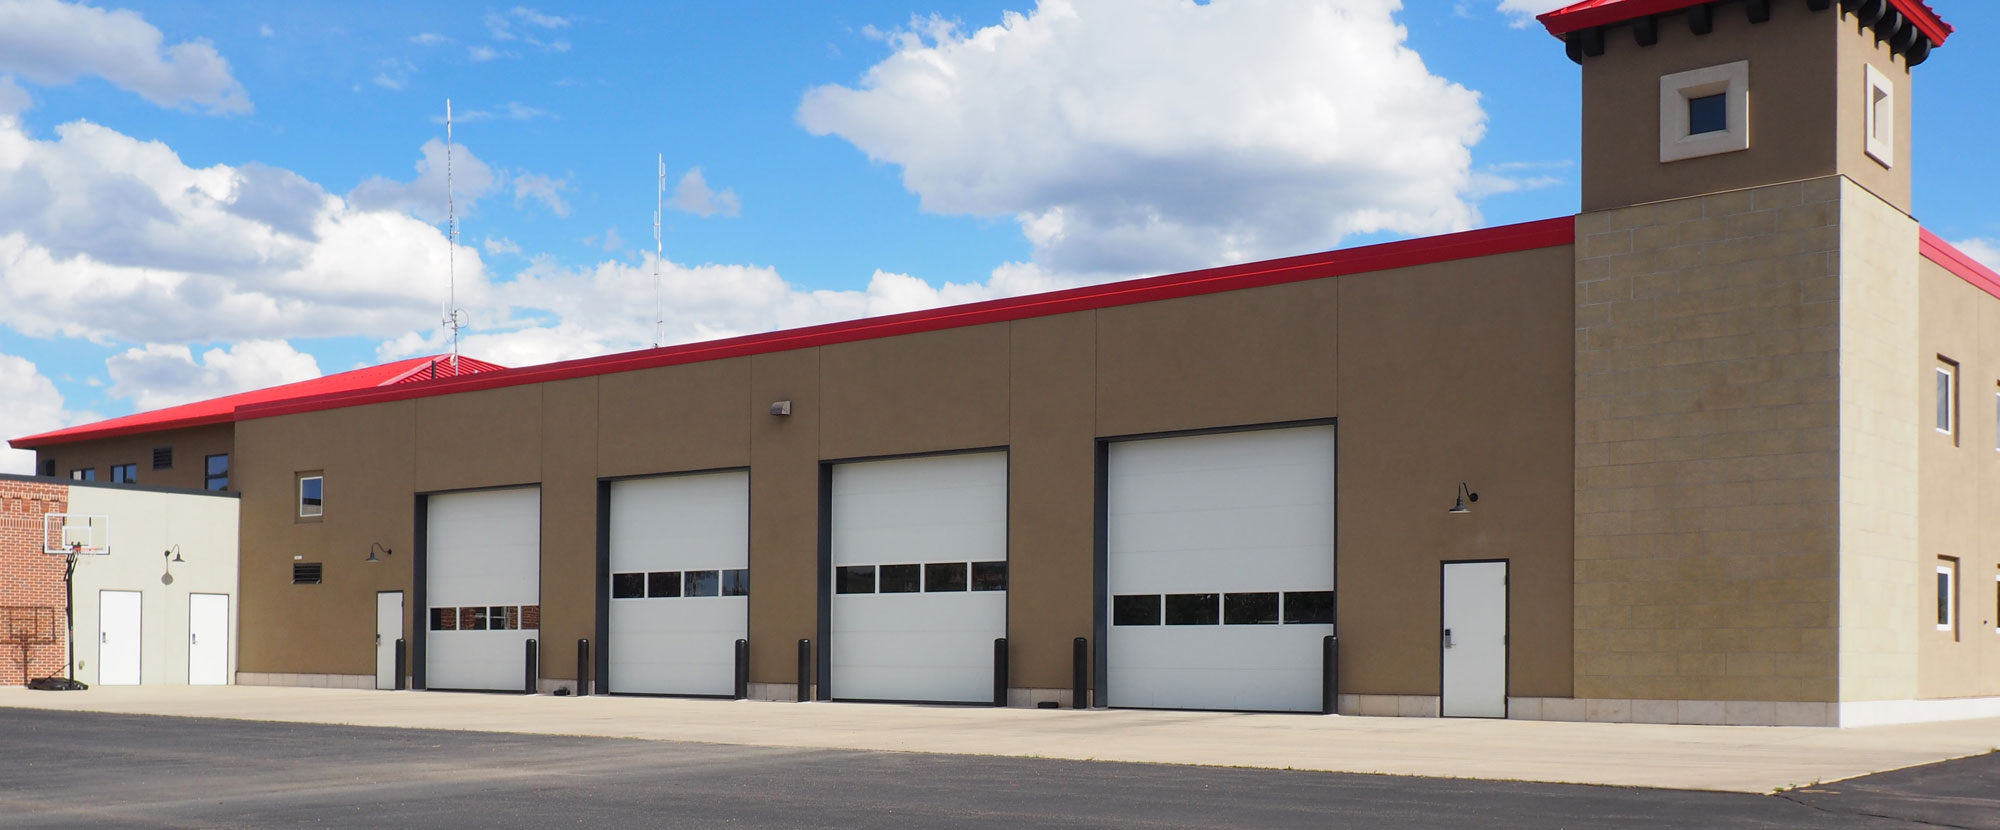 Commercial Overhead Doors in West Monroe u0026 Ruston LA & Bayou Overhead Door | Installation u0026 Repair: West Monroe u0026 Ruston LA